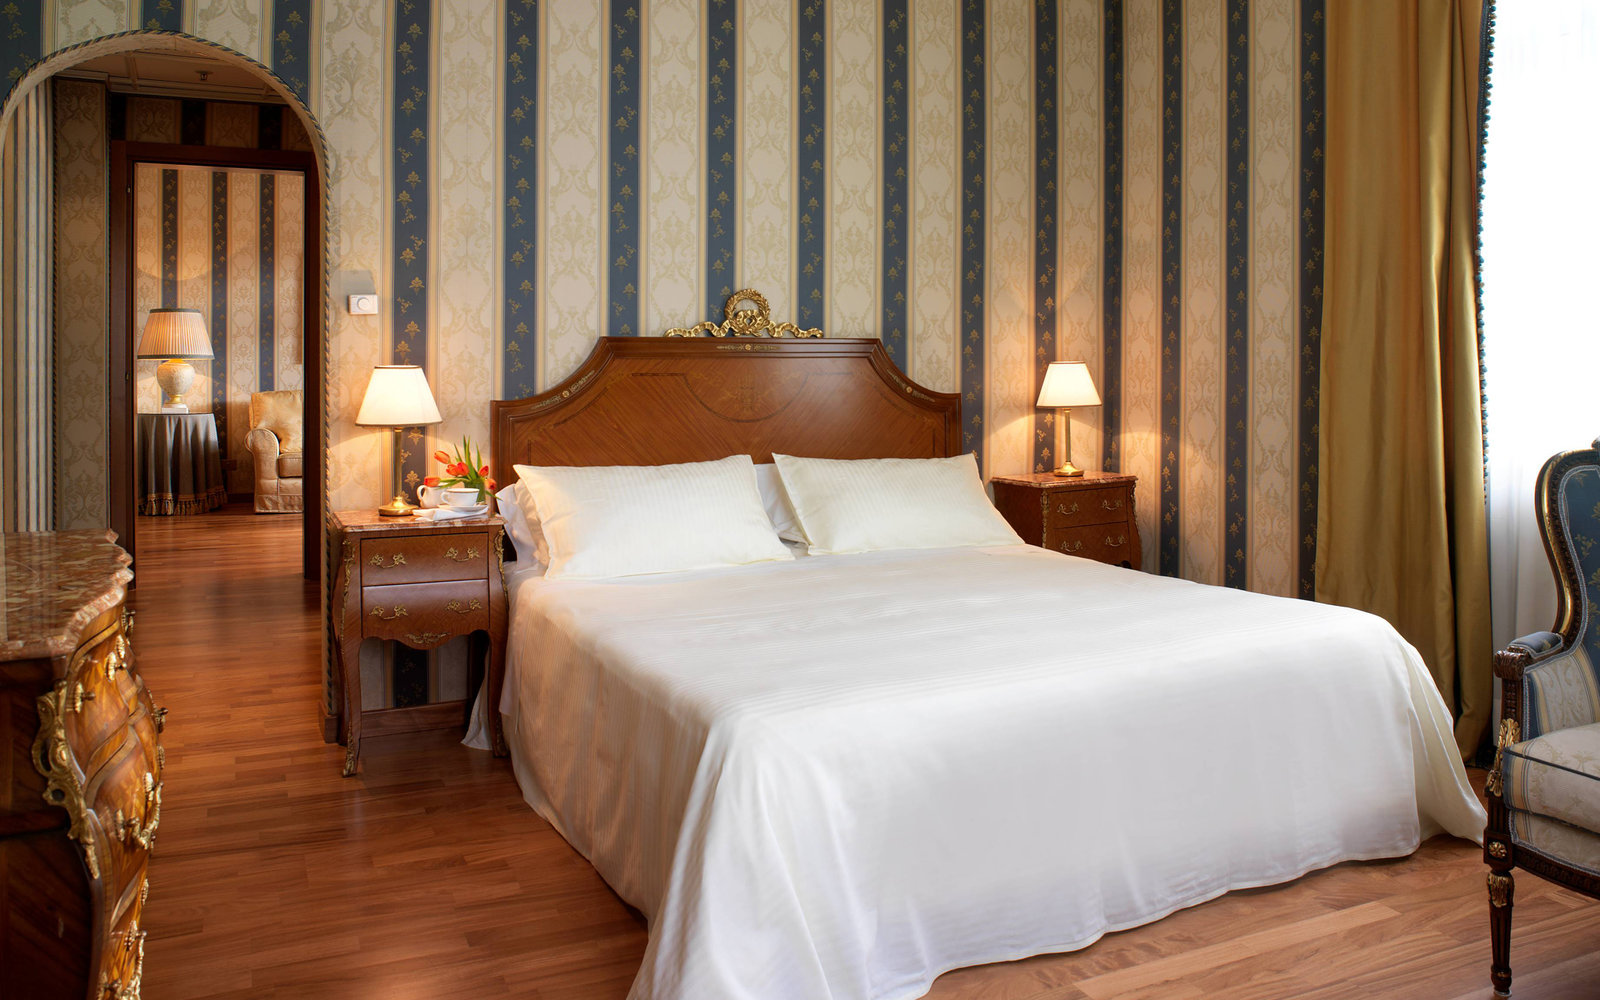 No. 7: Hotel Bernini Bristol